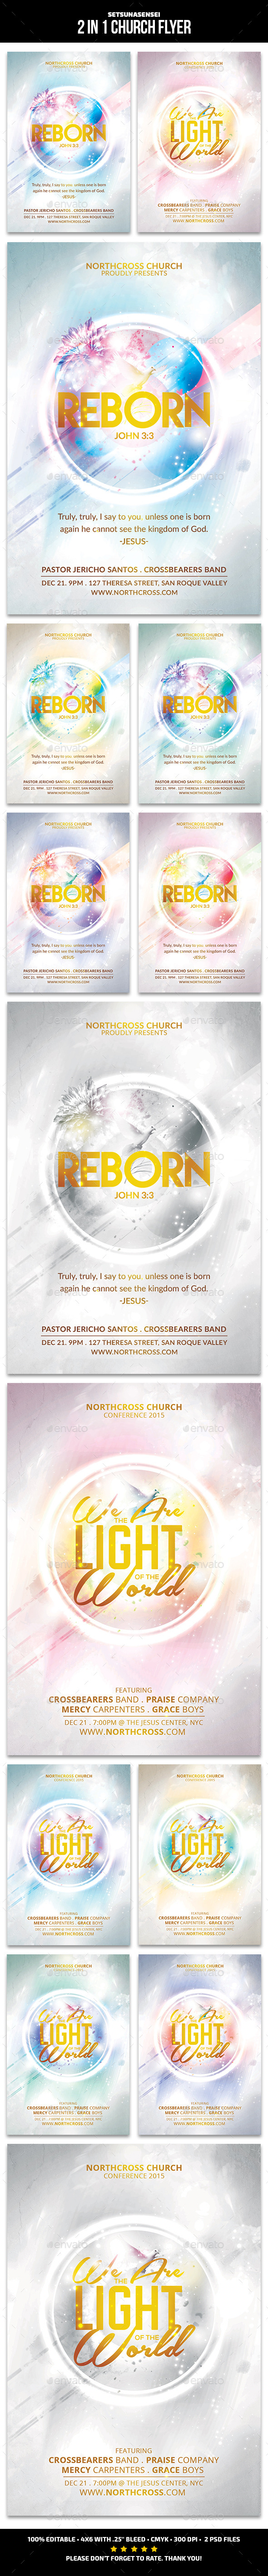 Reborn Church Flyer - Church Flyers